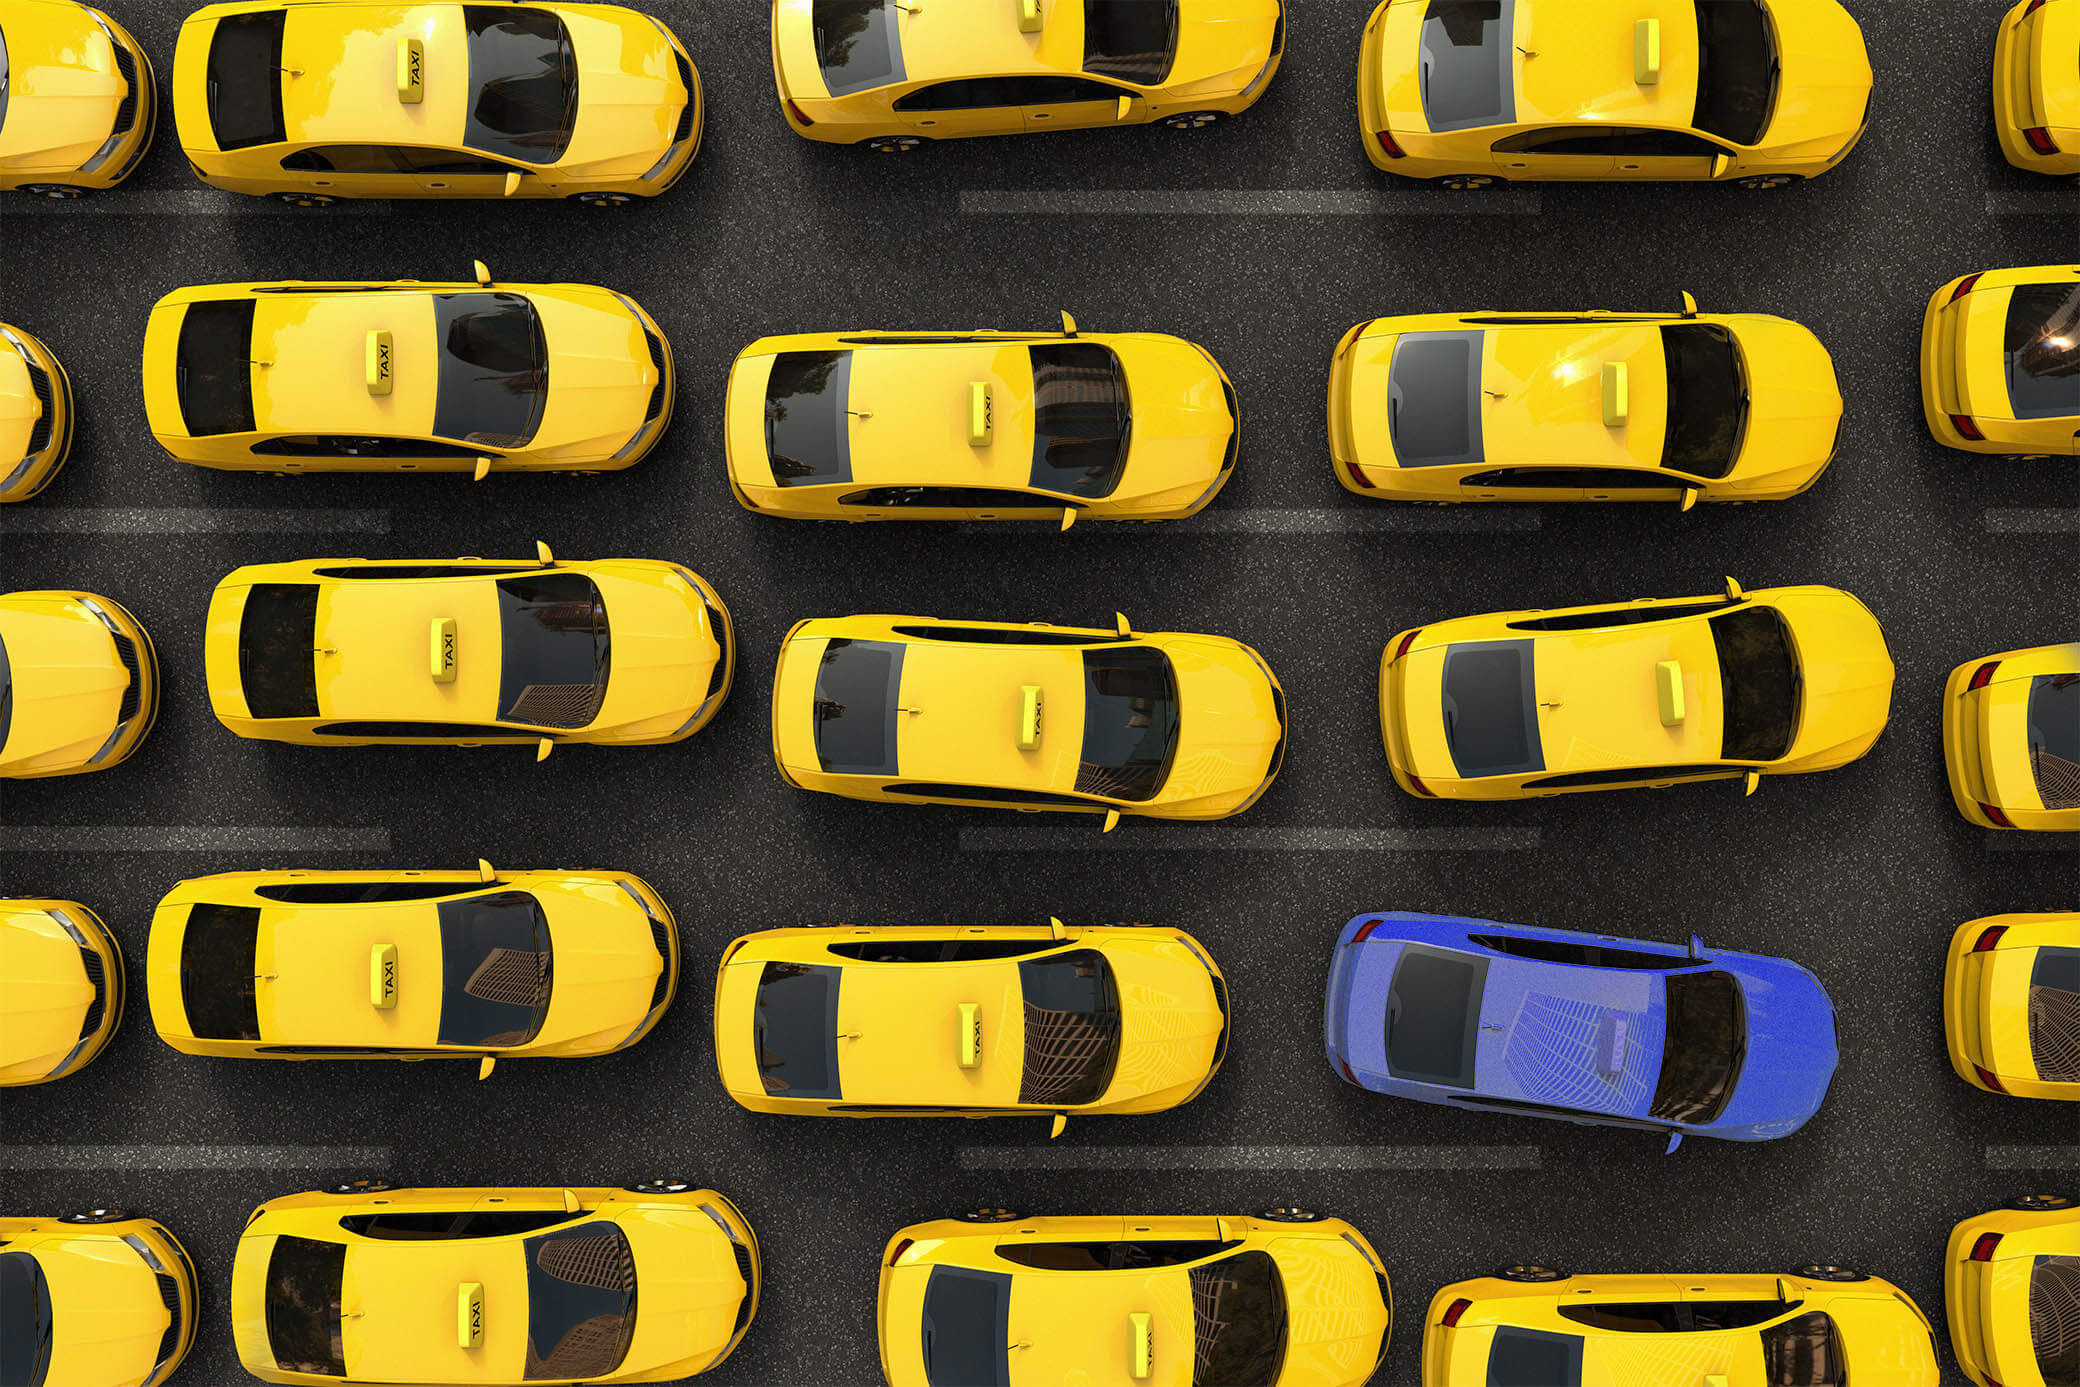 Bird's eye view of yellow cabs with one blue taxi